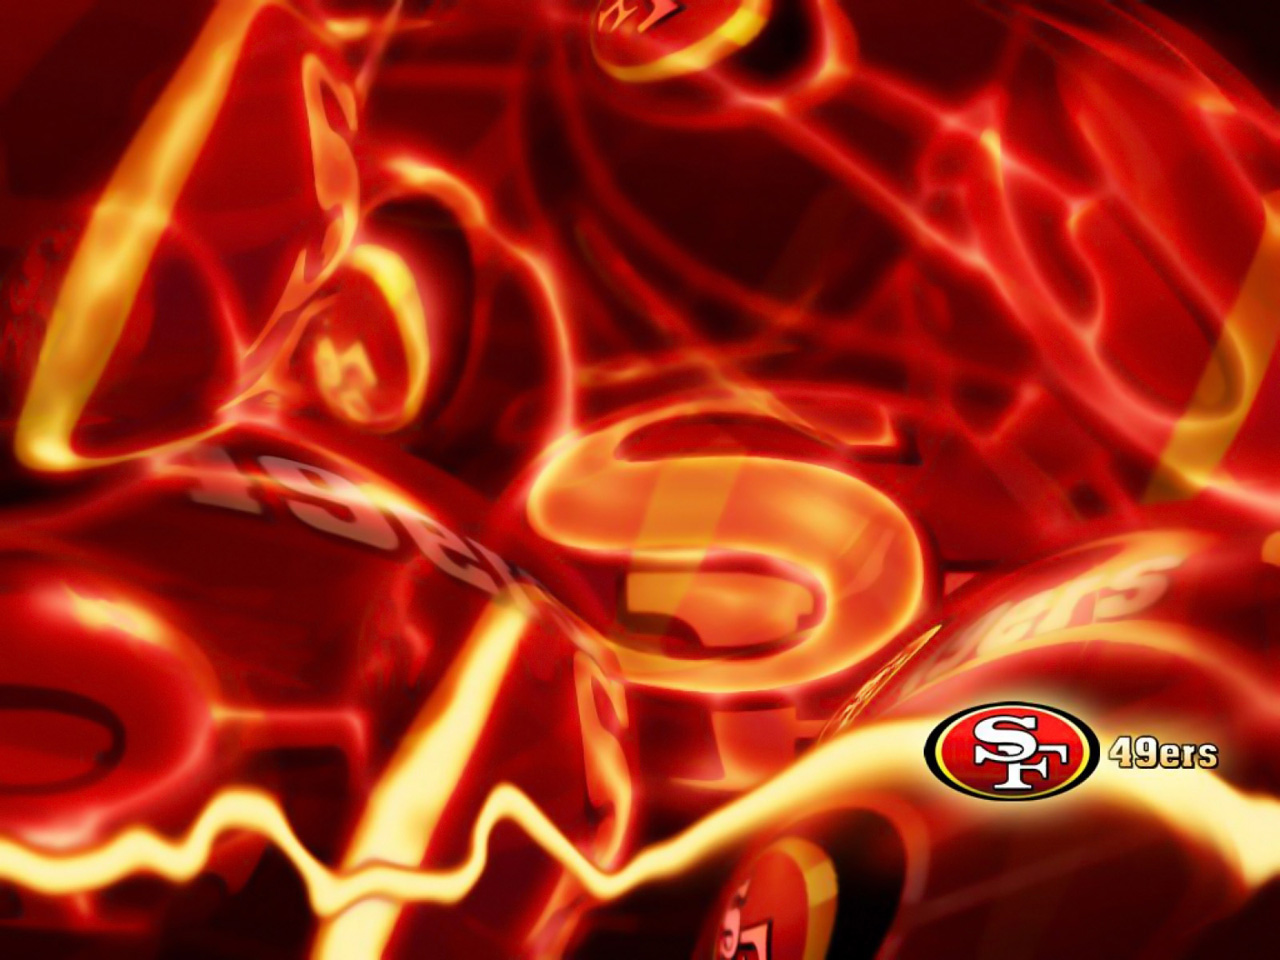 49ers or even videos related to San Francisco 49ers wallpaper 1280x960